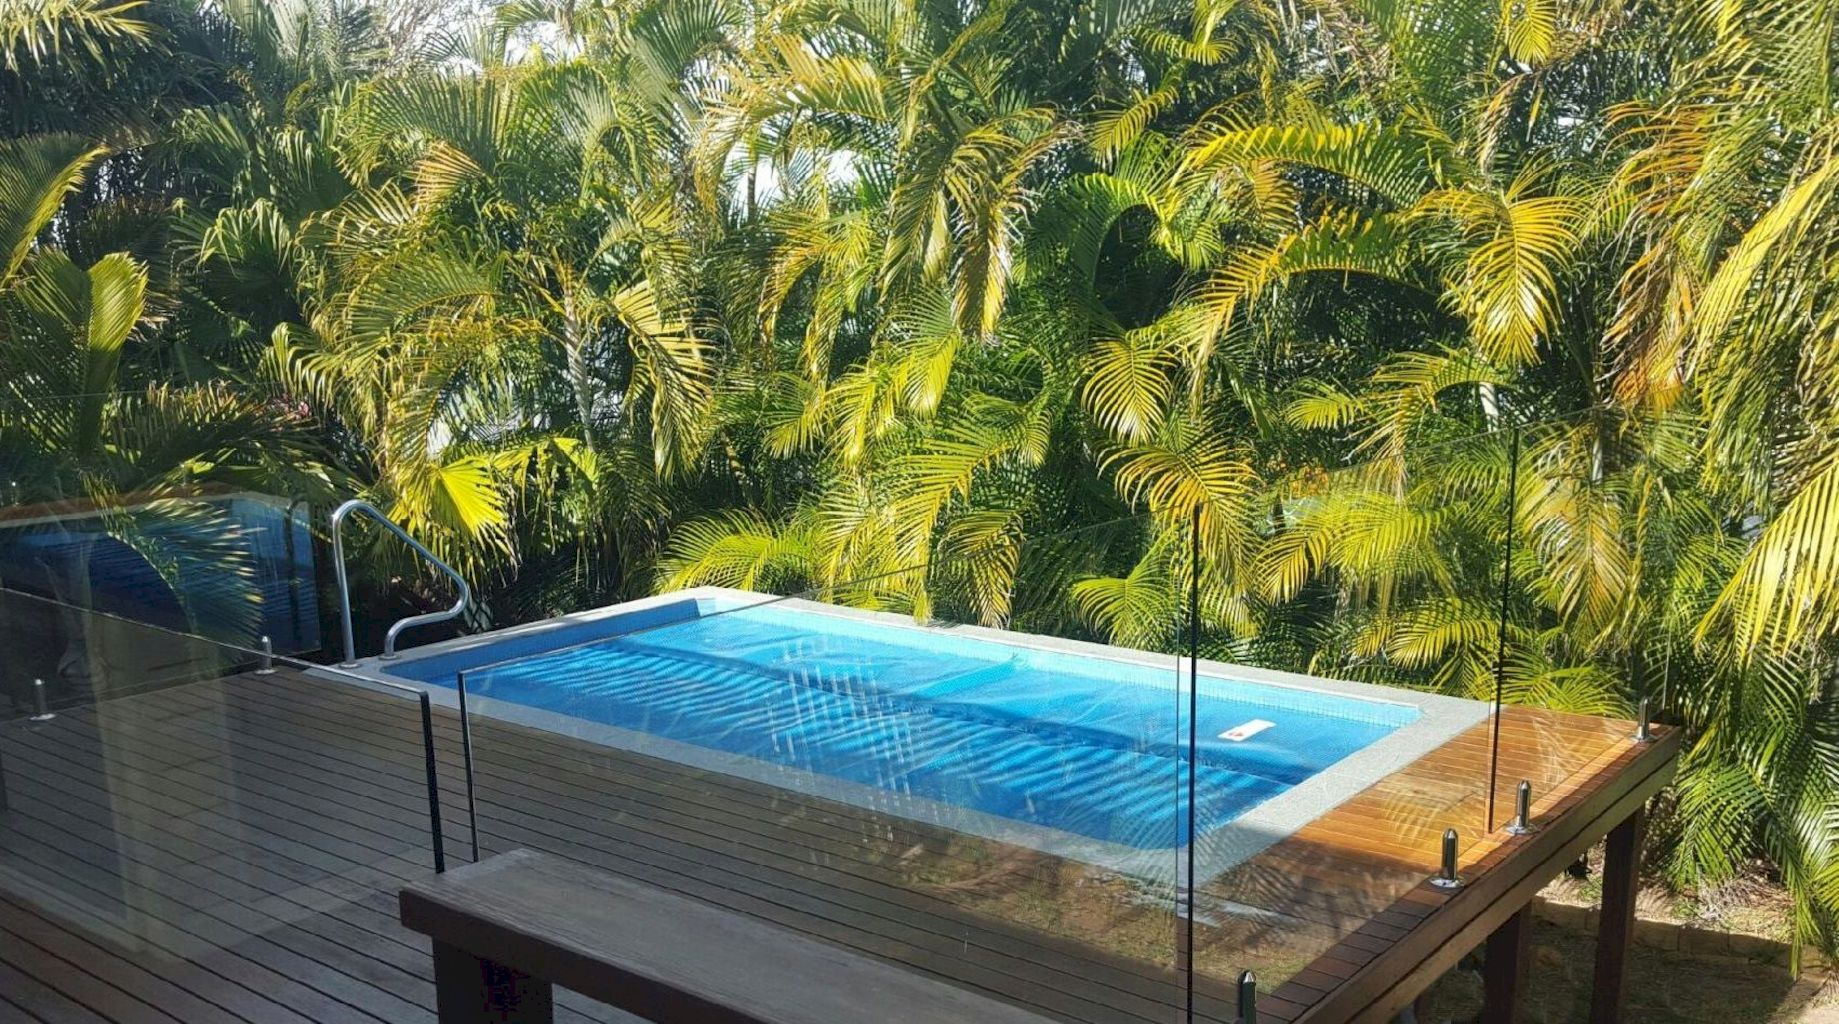 Affordable rectangular pool designs built in small areas that give a lavish look getting along with beautiful landscape (22)